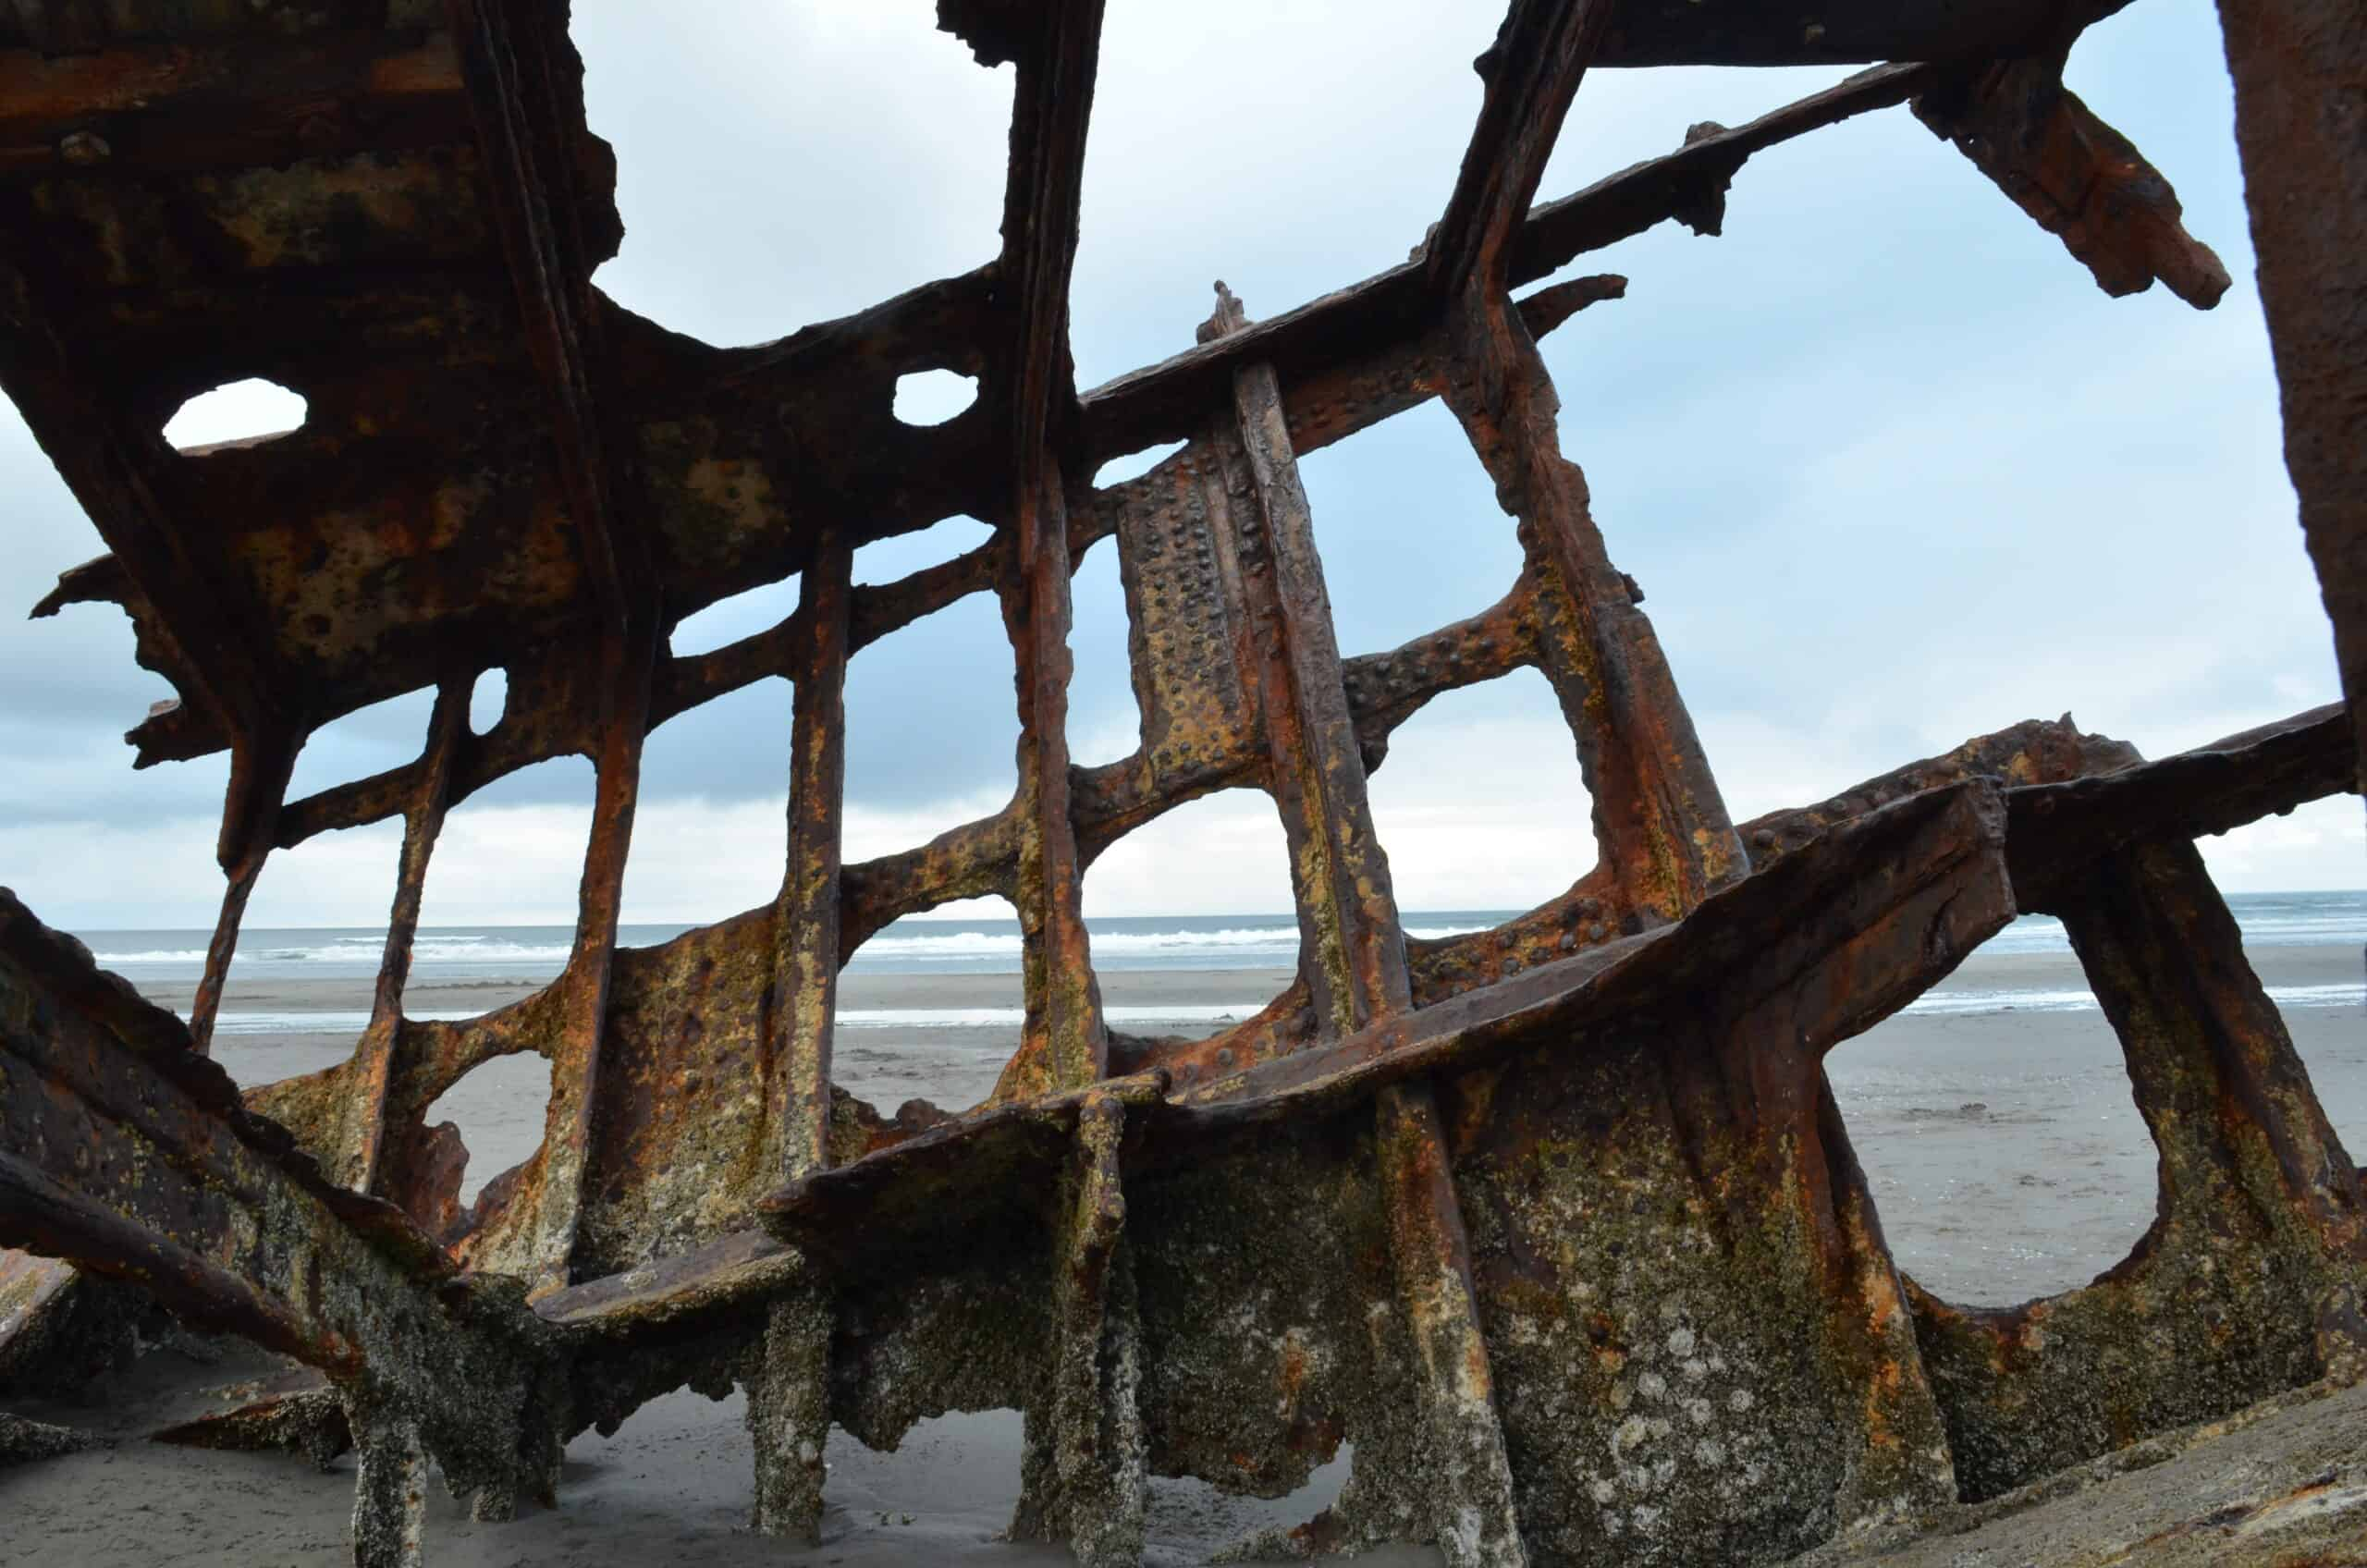 close up of rusty shipwreck remains on beach